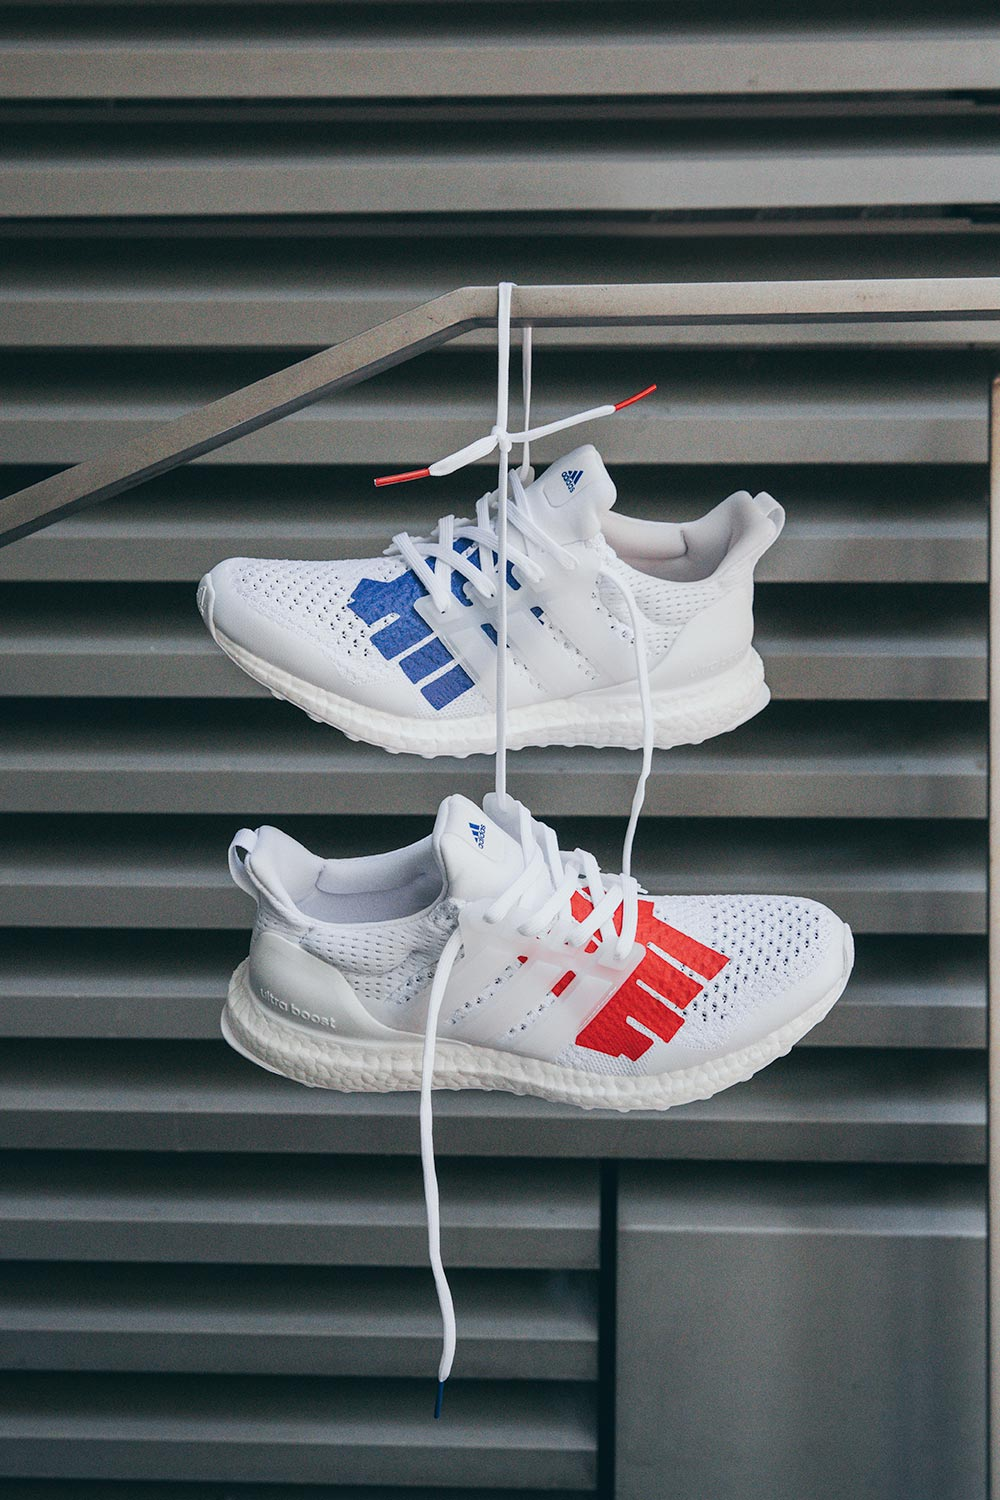 On Sale: Undefeated x adidas UltraBOOST 1.0